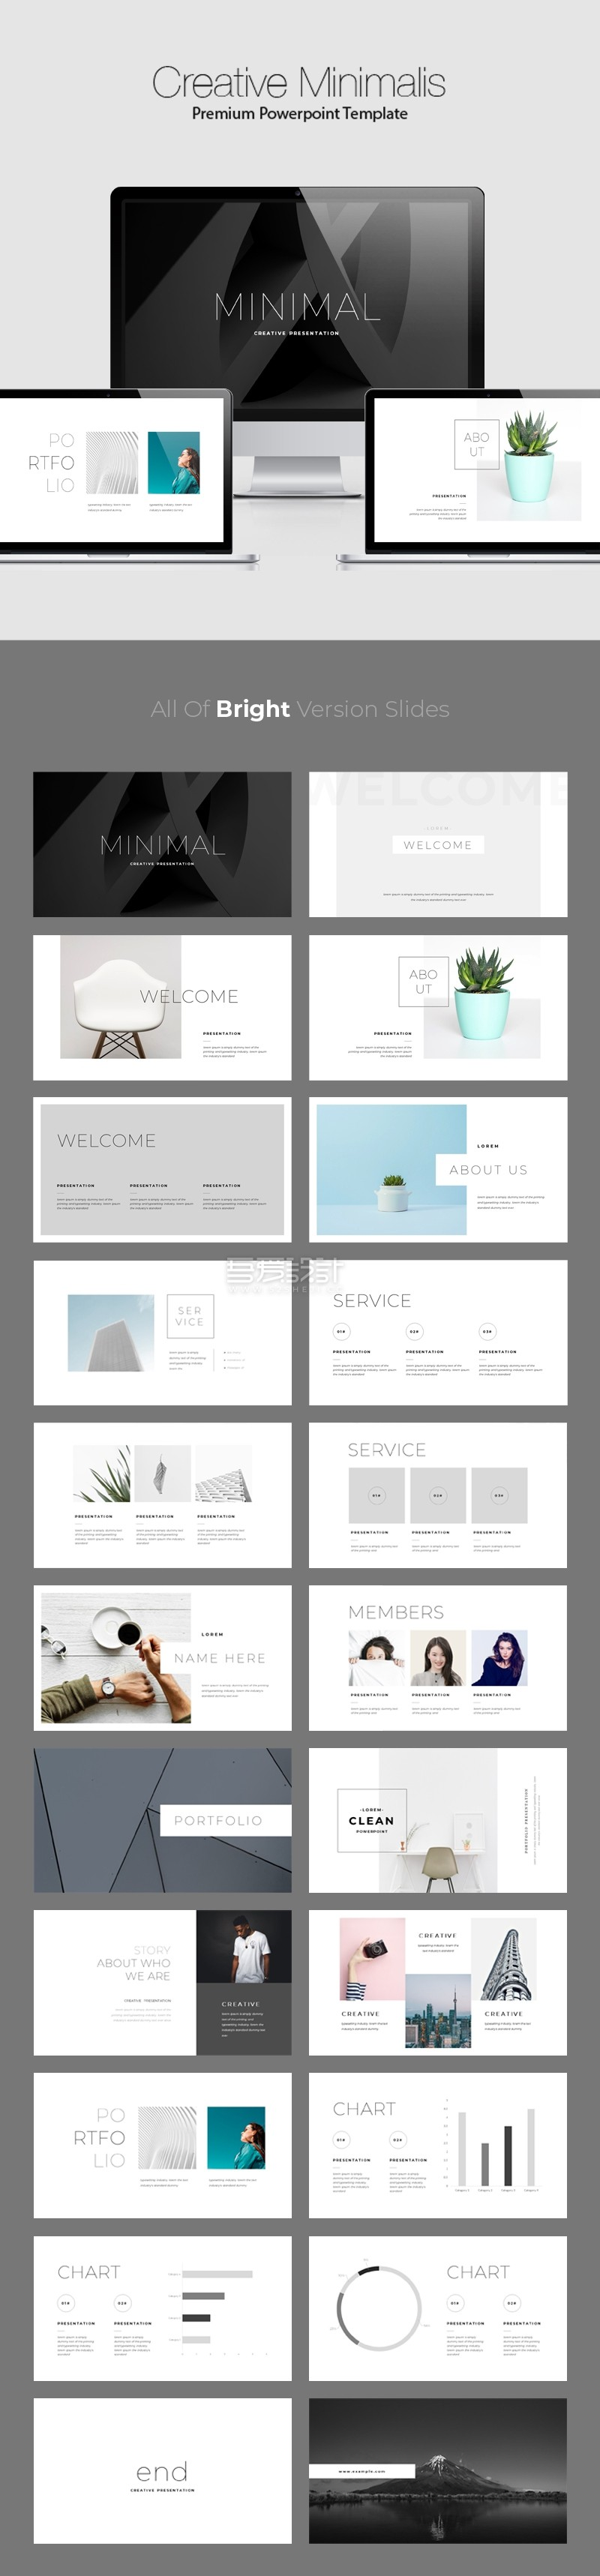 minimal-powerpoint-template-1605-preview